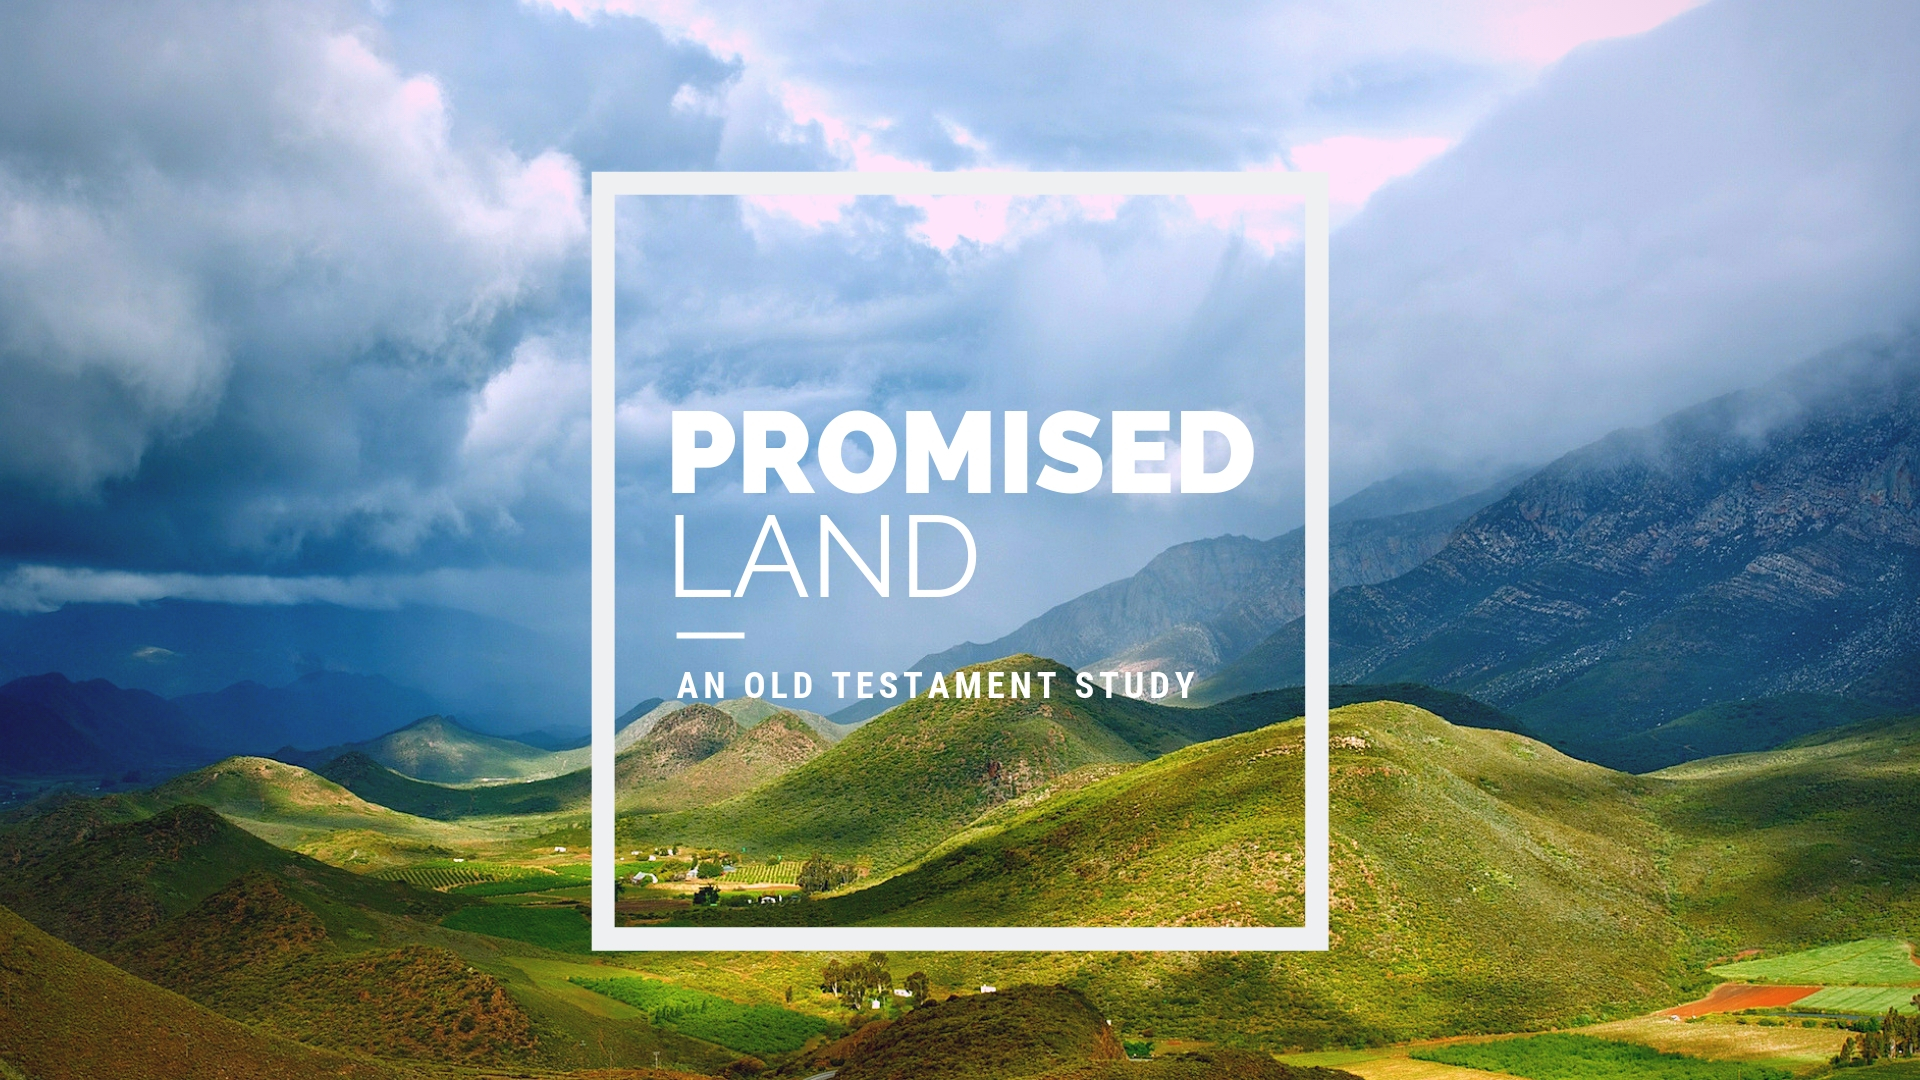 Copy of Promised Land Logo.jpg